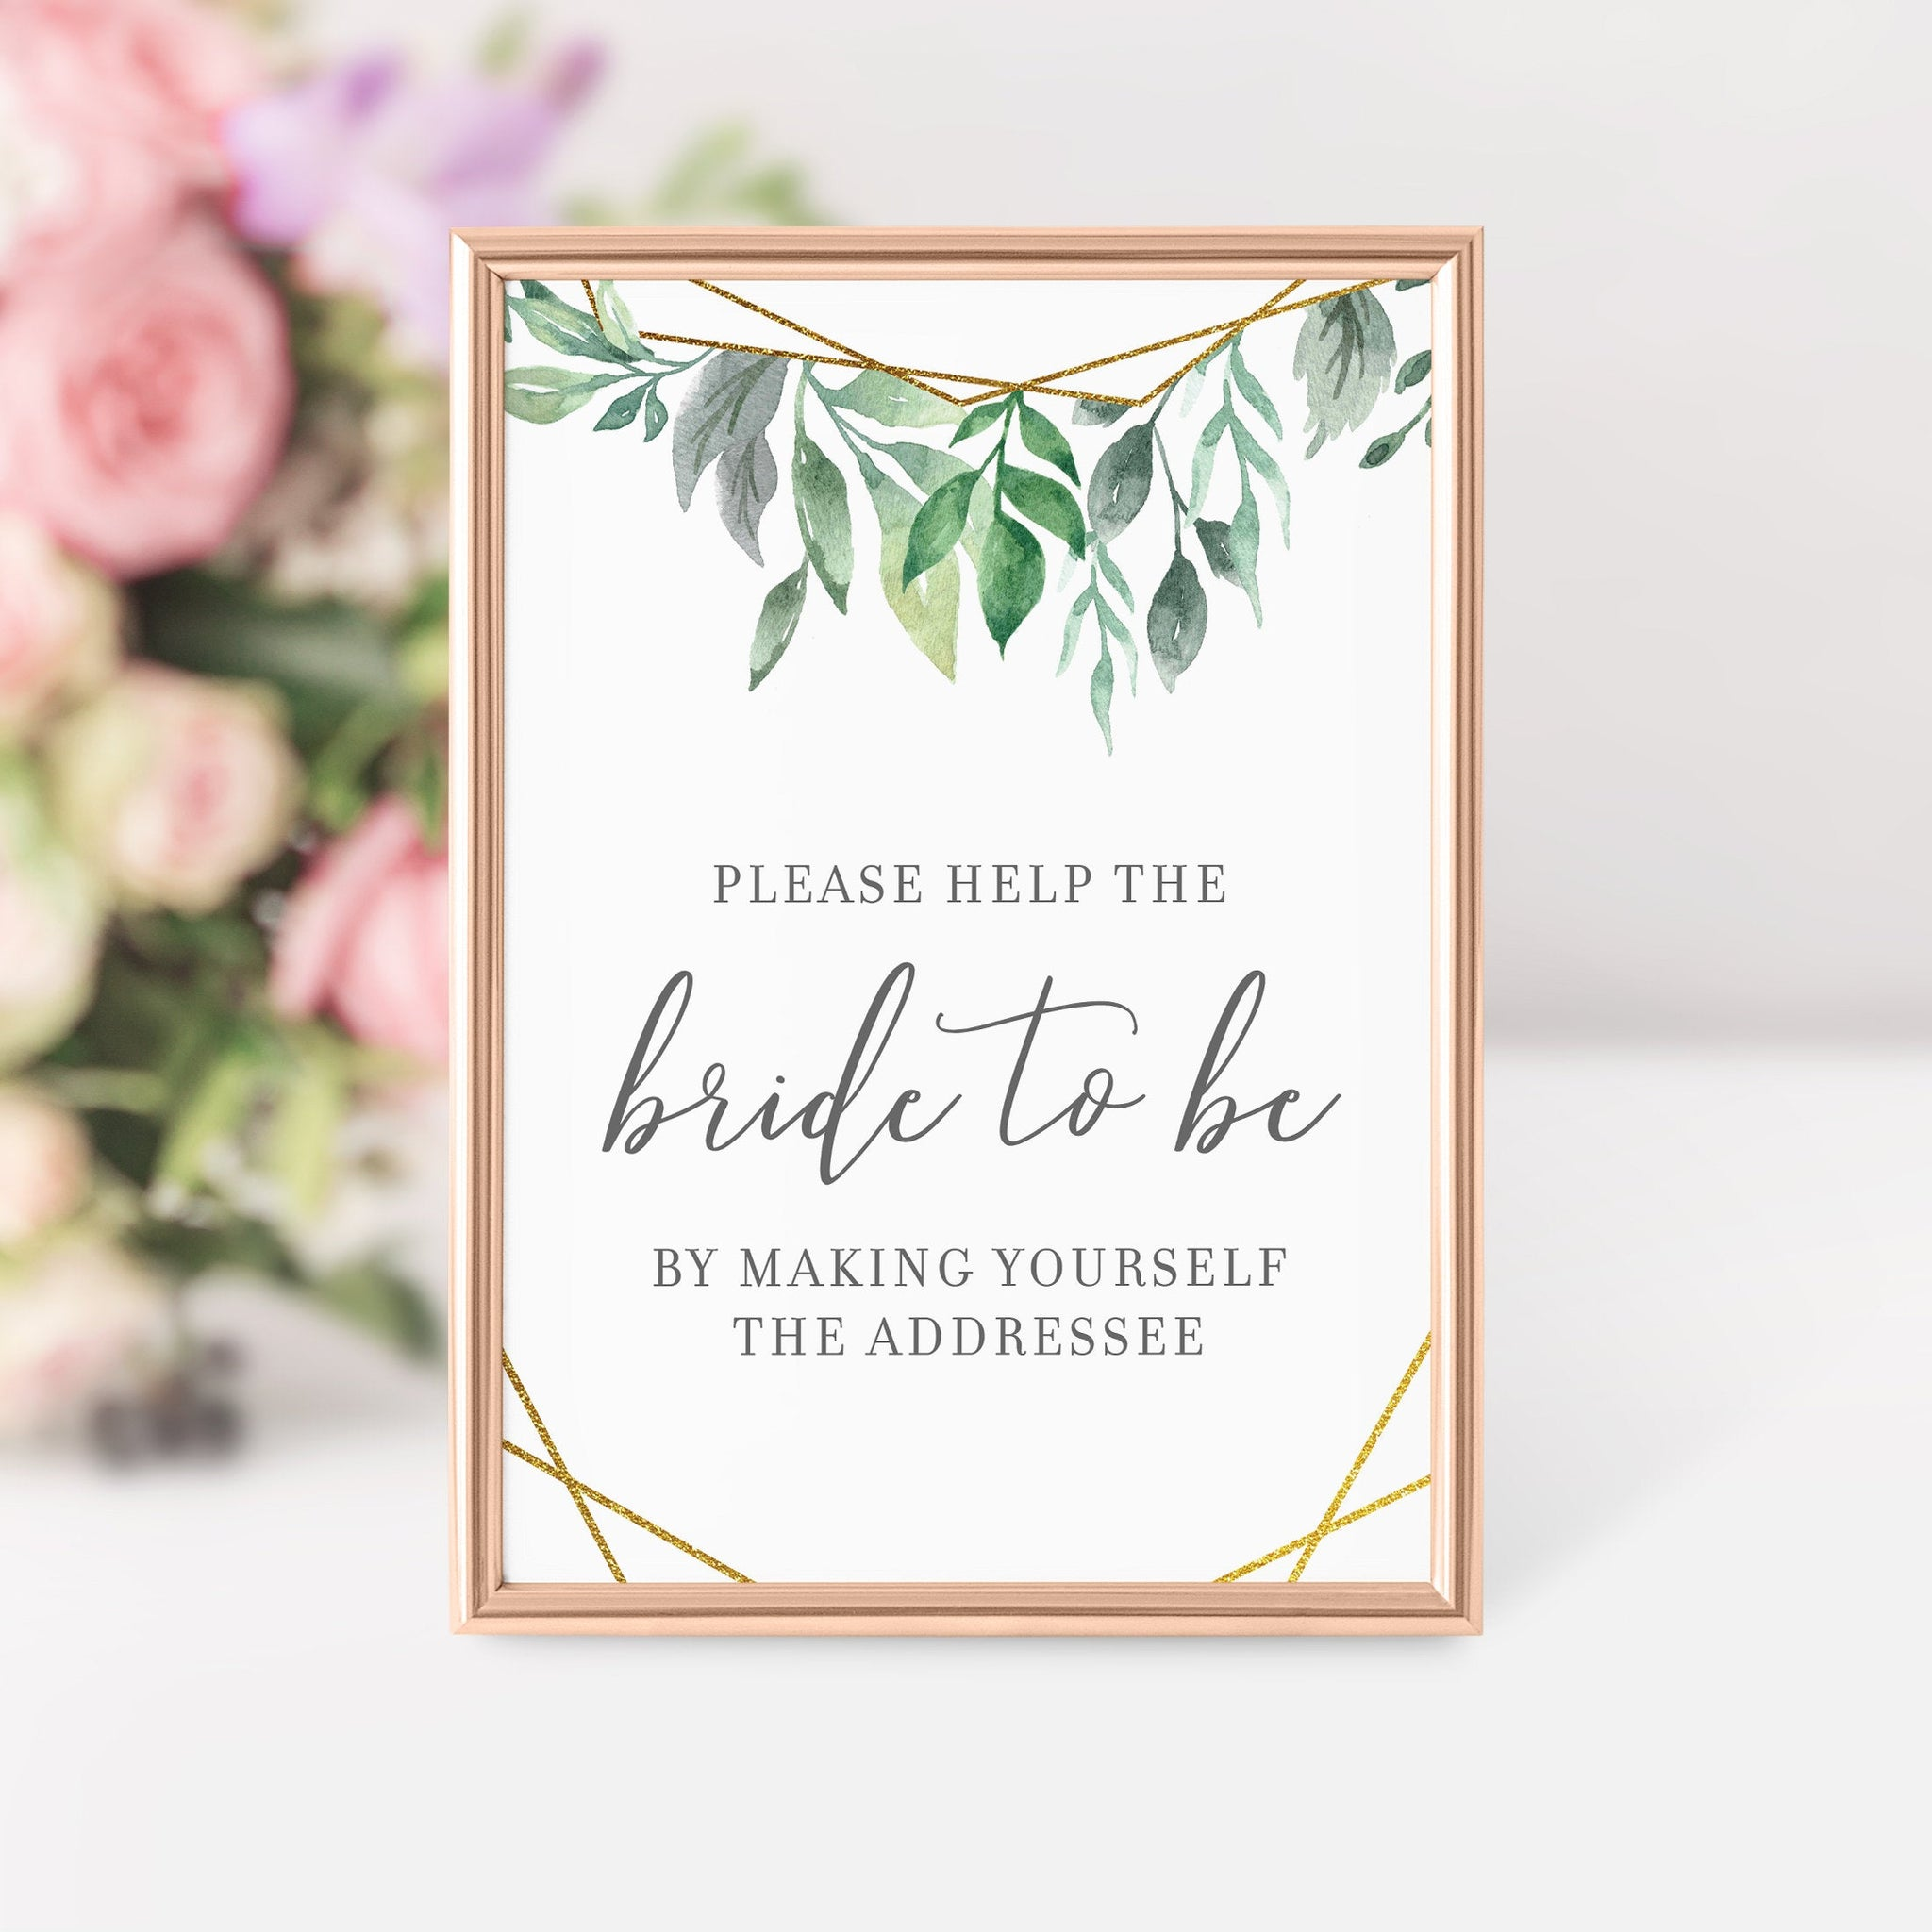 Geometric Gold Greenery Printable Bridal Shower Address an Envelope Sign INSTANT DOWNLOAD, Bridal Shower Decorations and Supplies - GFG100